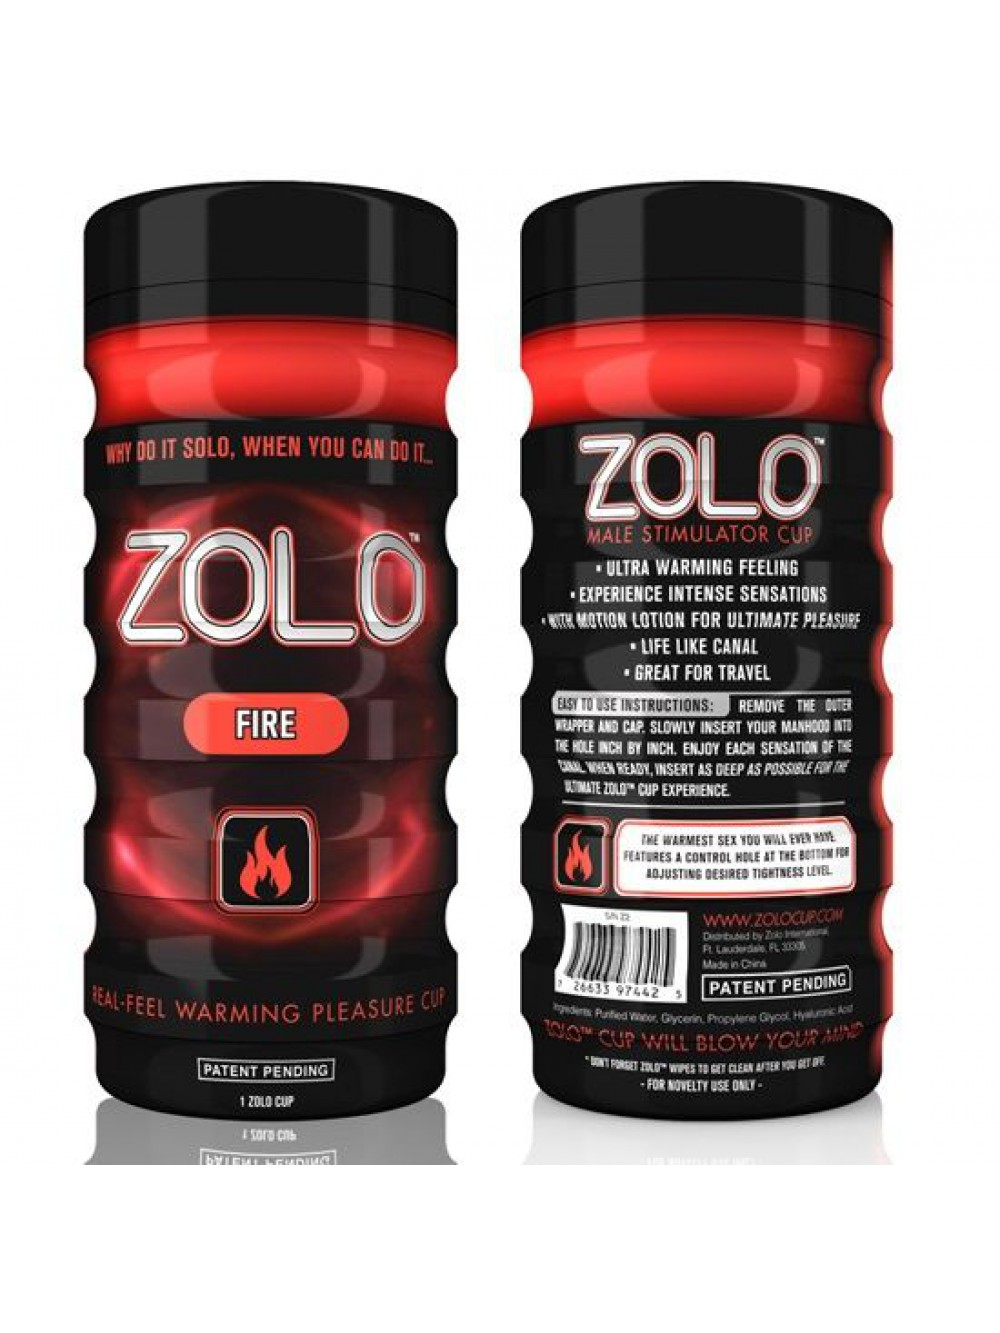 ZOLO FIRE CUP